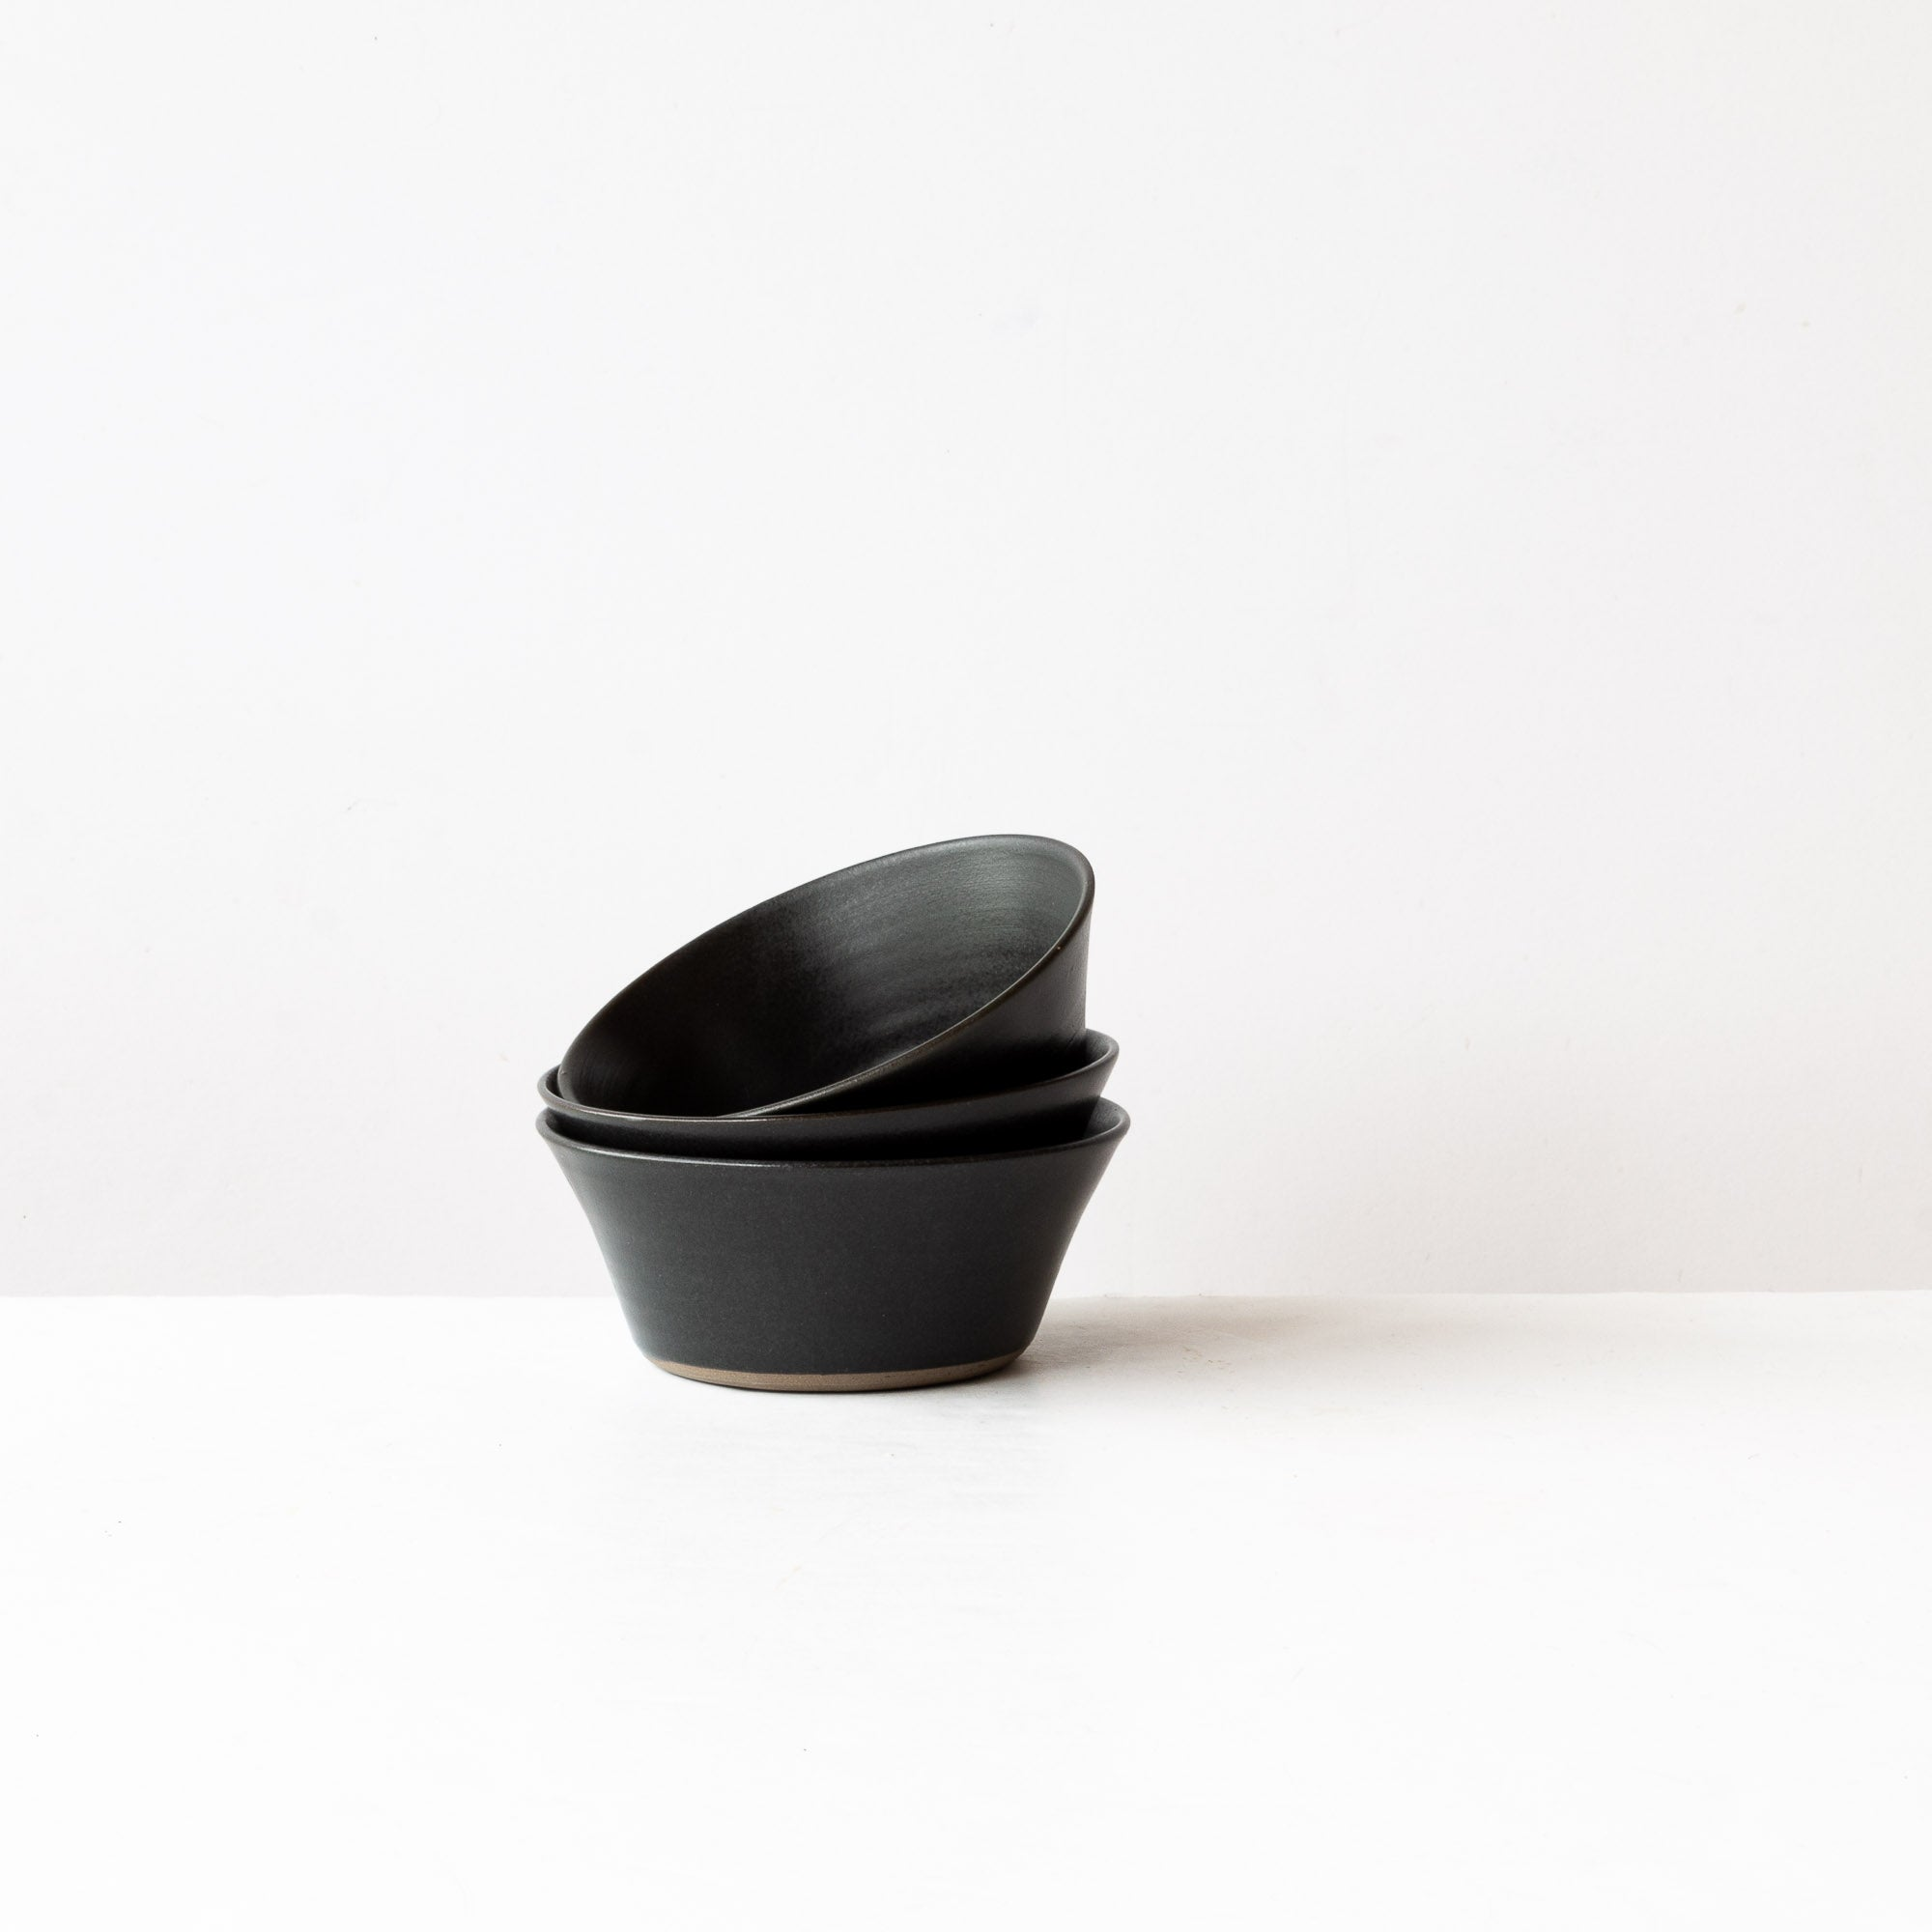 Matte Black - 3 Handmade Grey Stoneware Blooming Bowls - Sold by Chic & Basta